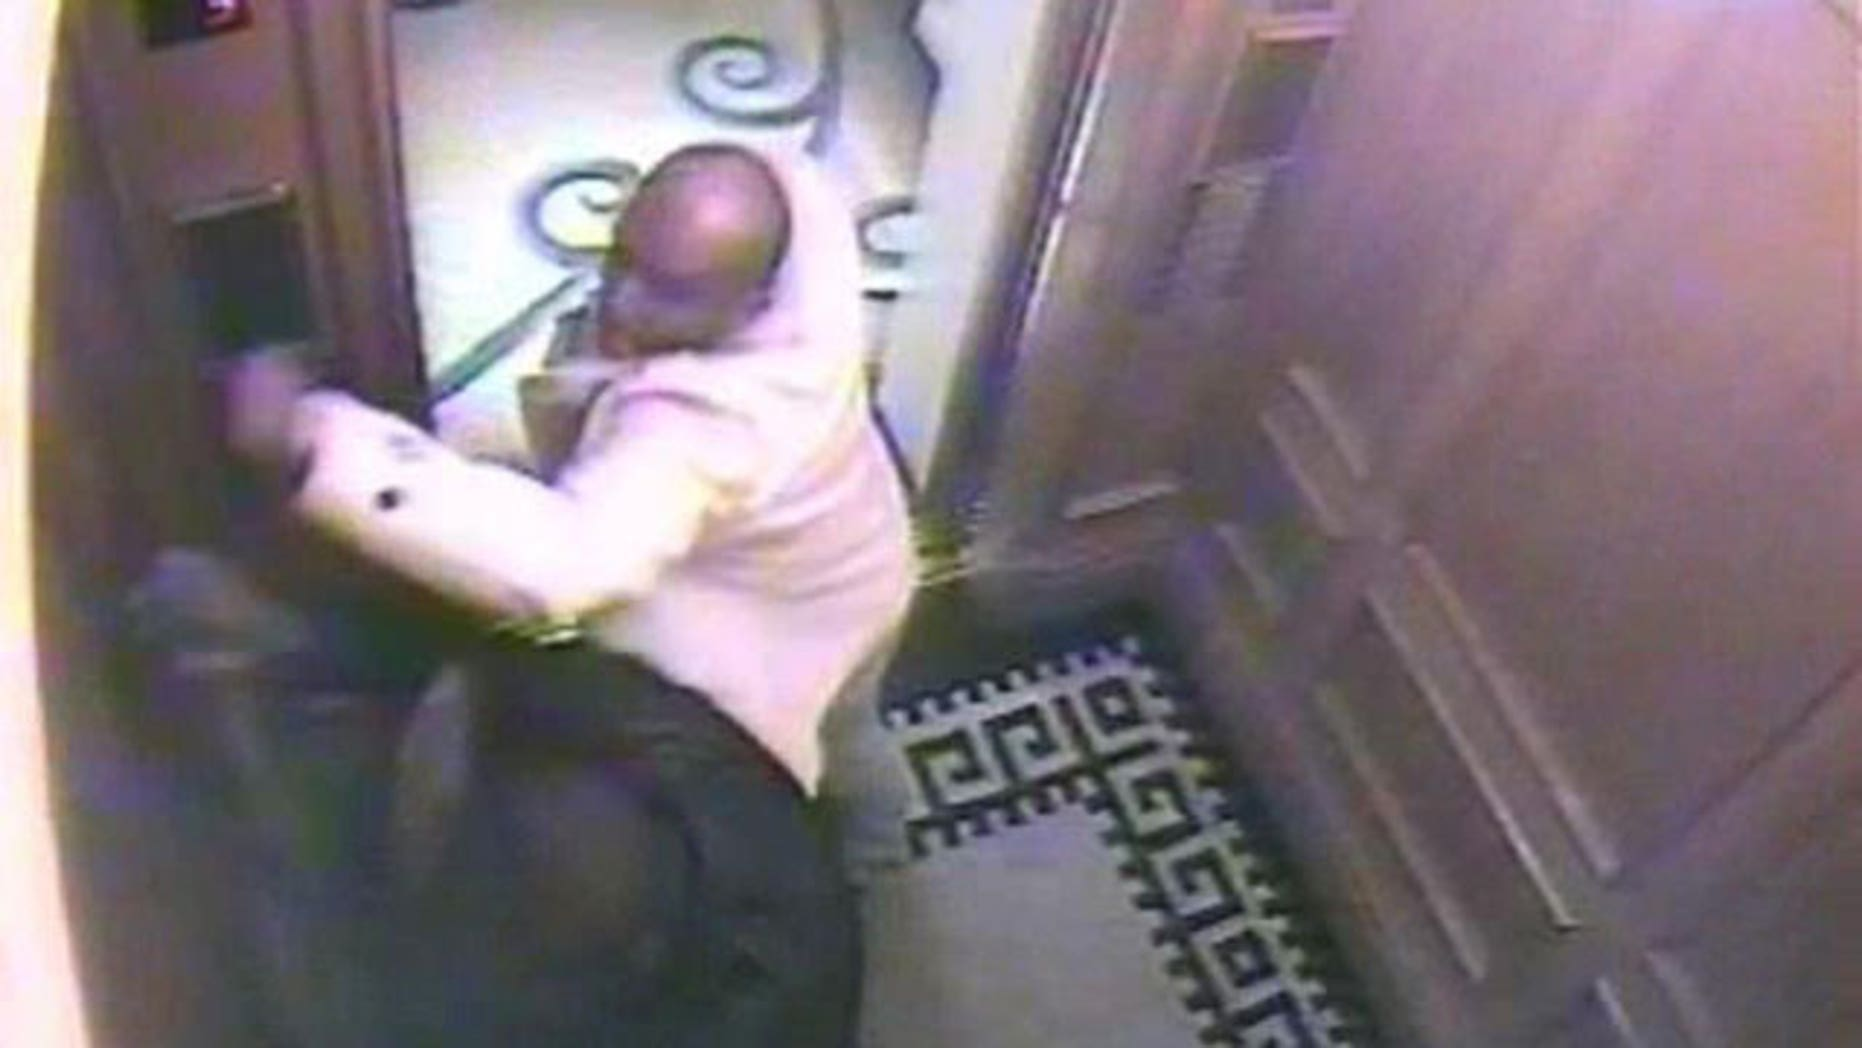 In this CCTV handout image issued by the Metropolitan Police, Saudi Arabian Prince Saud, in white jacket, attacks his servant, Bandar Abdulaziz, in a lift. A Saudi prince has been convicted in Britain of murdering a servant. A jury in London's Old Bailey criminal court, on Tuesday Oct. 19, 2010, found Prince Saud Abdulaziz bin Nasser al Saud guilty of murdering Bandar Abdullah Abdulaziz in a frenzied attack in a hotel. The 34-year-old prince faces a possible life sentence.